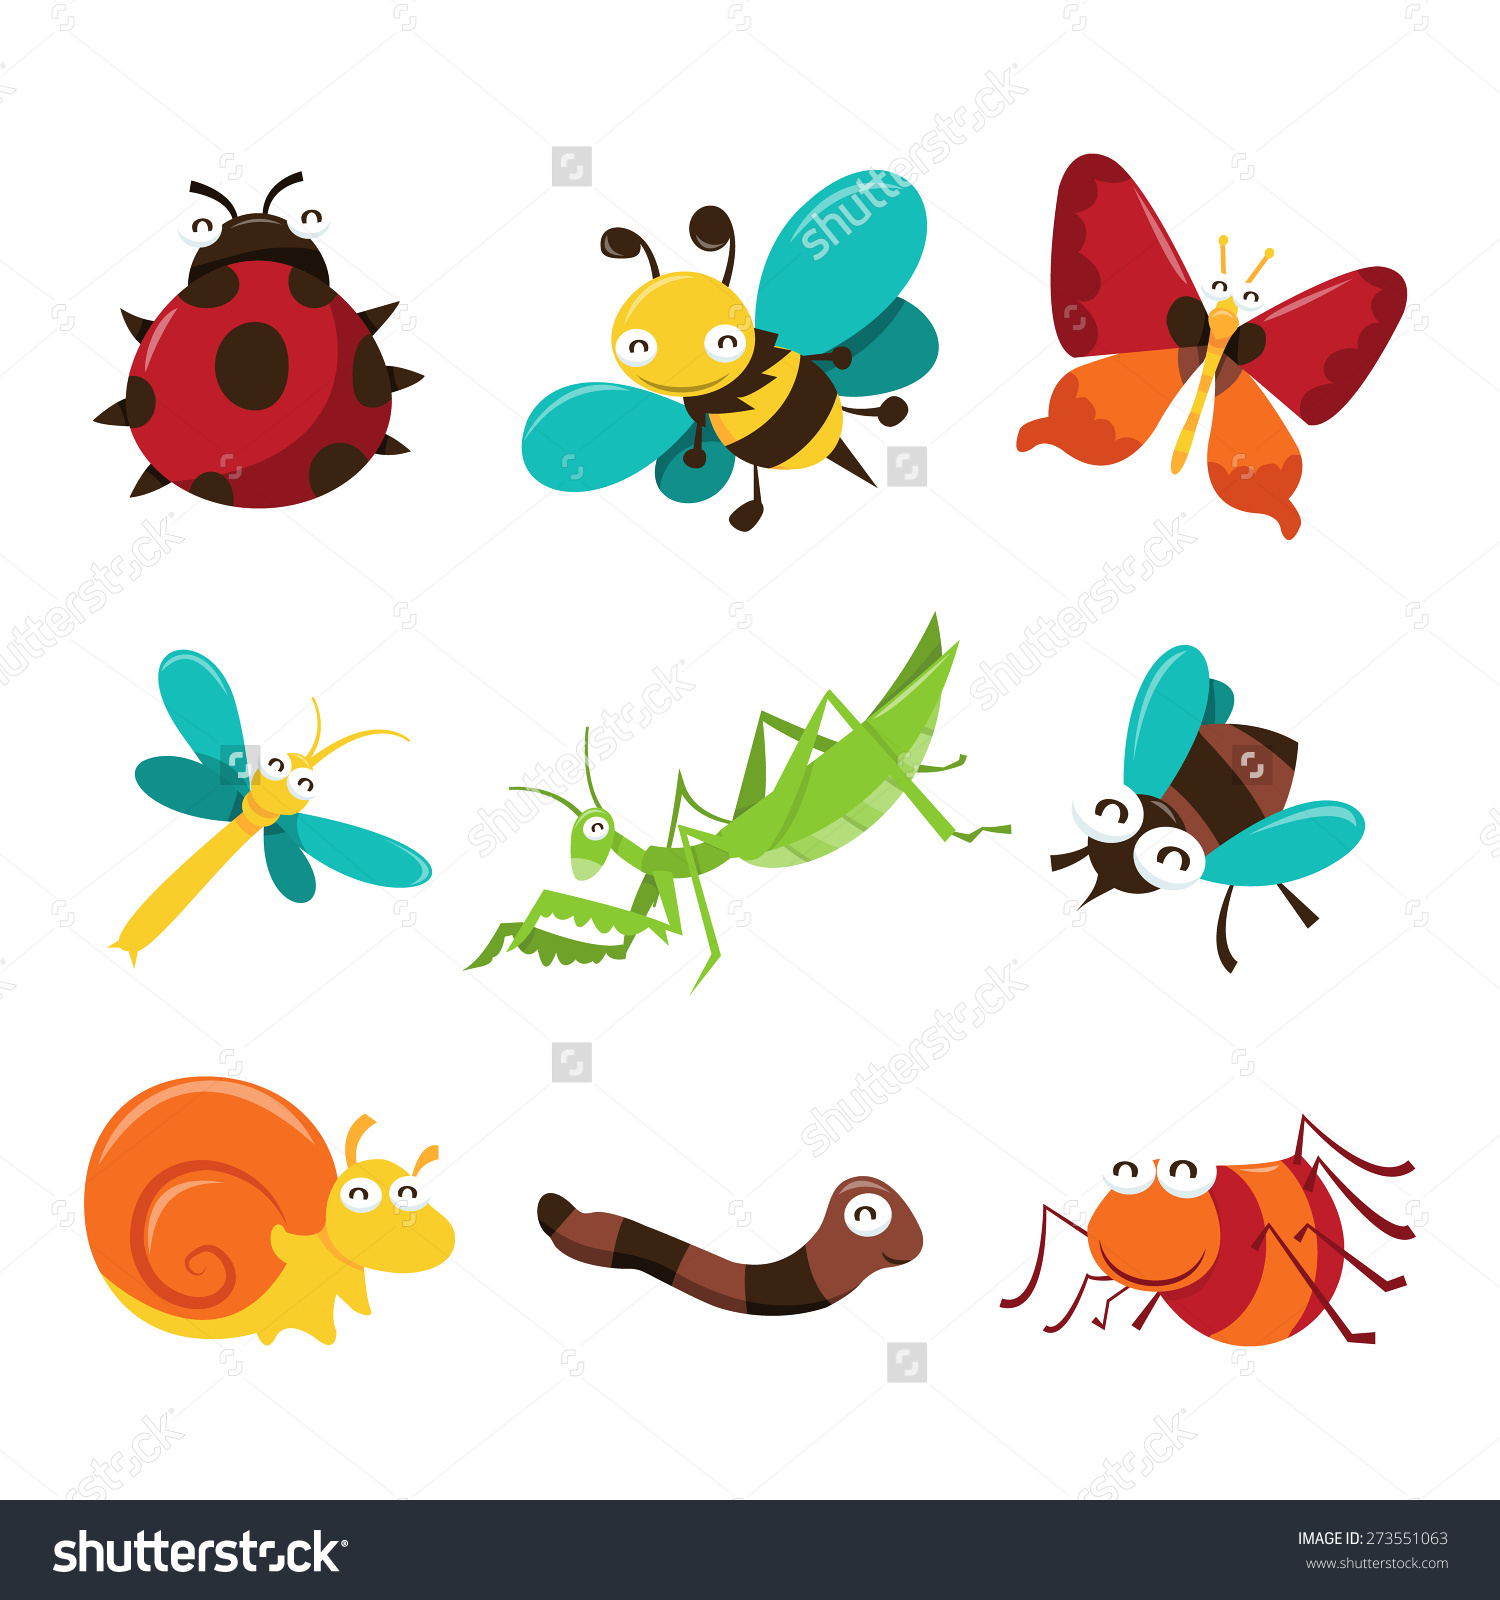 cute spiders and insect clipart